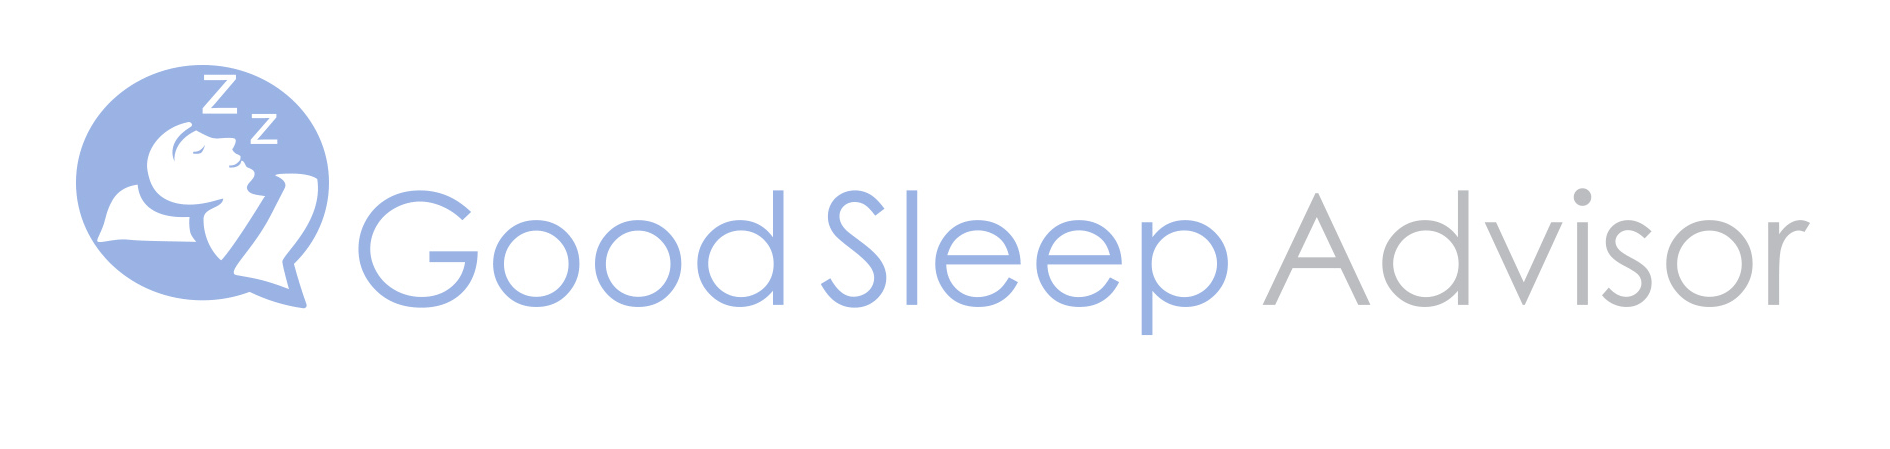 Good Sleep Advisor Logo